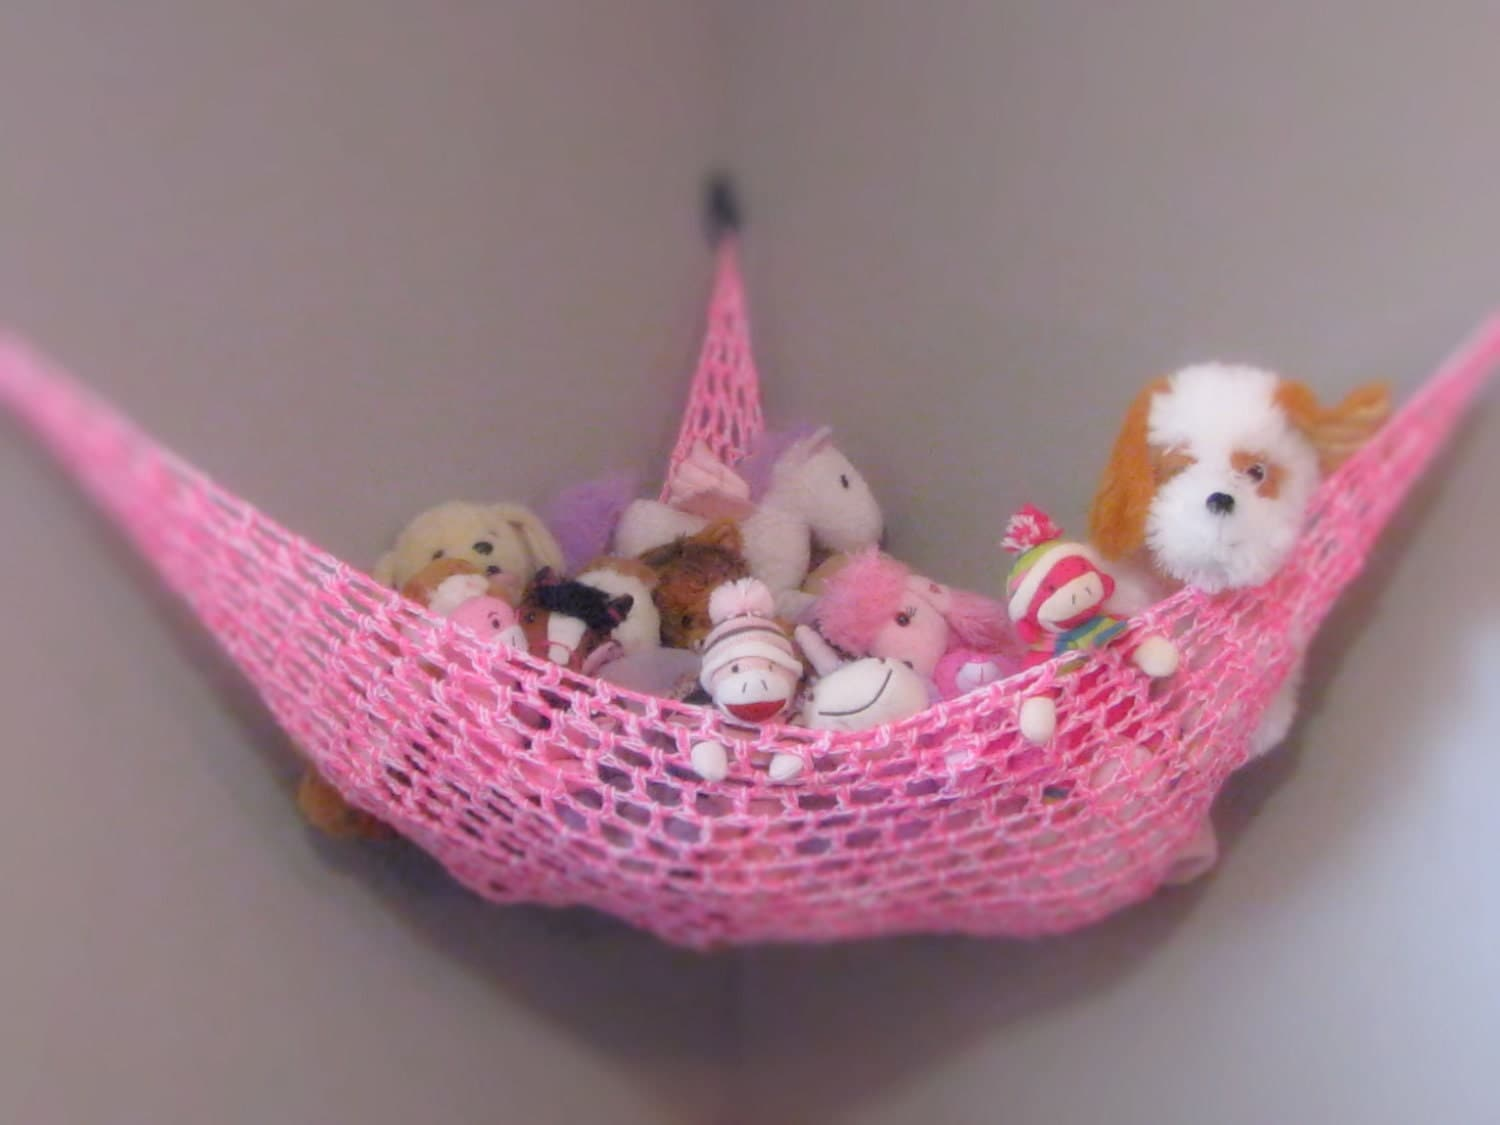 Toy Hammock Stuffed Animal Net Nursery And Childrens Room